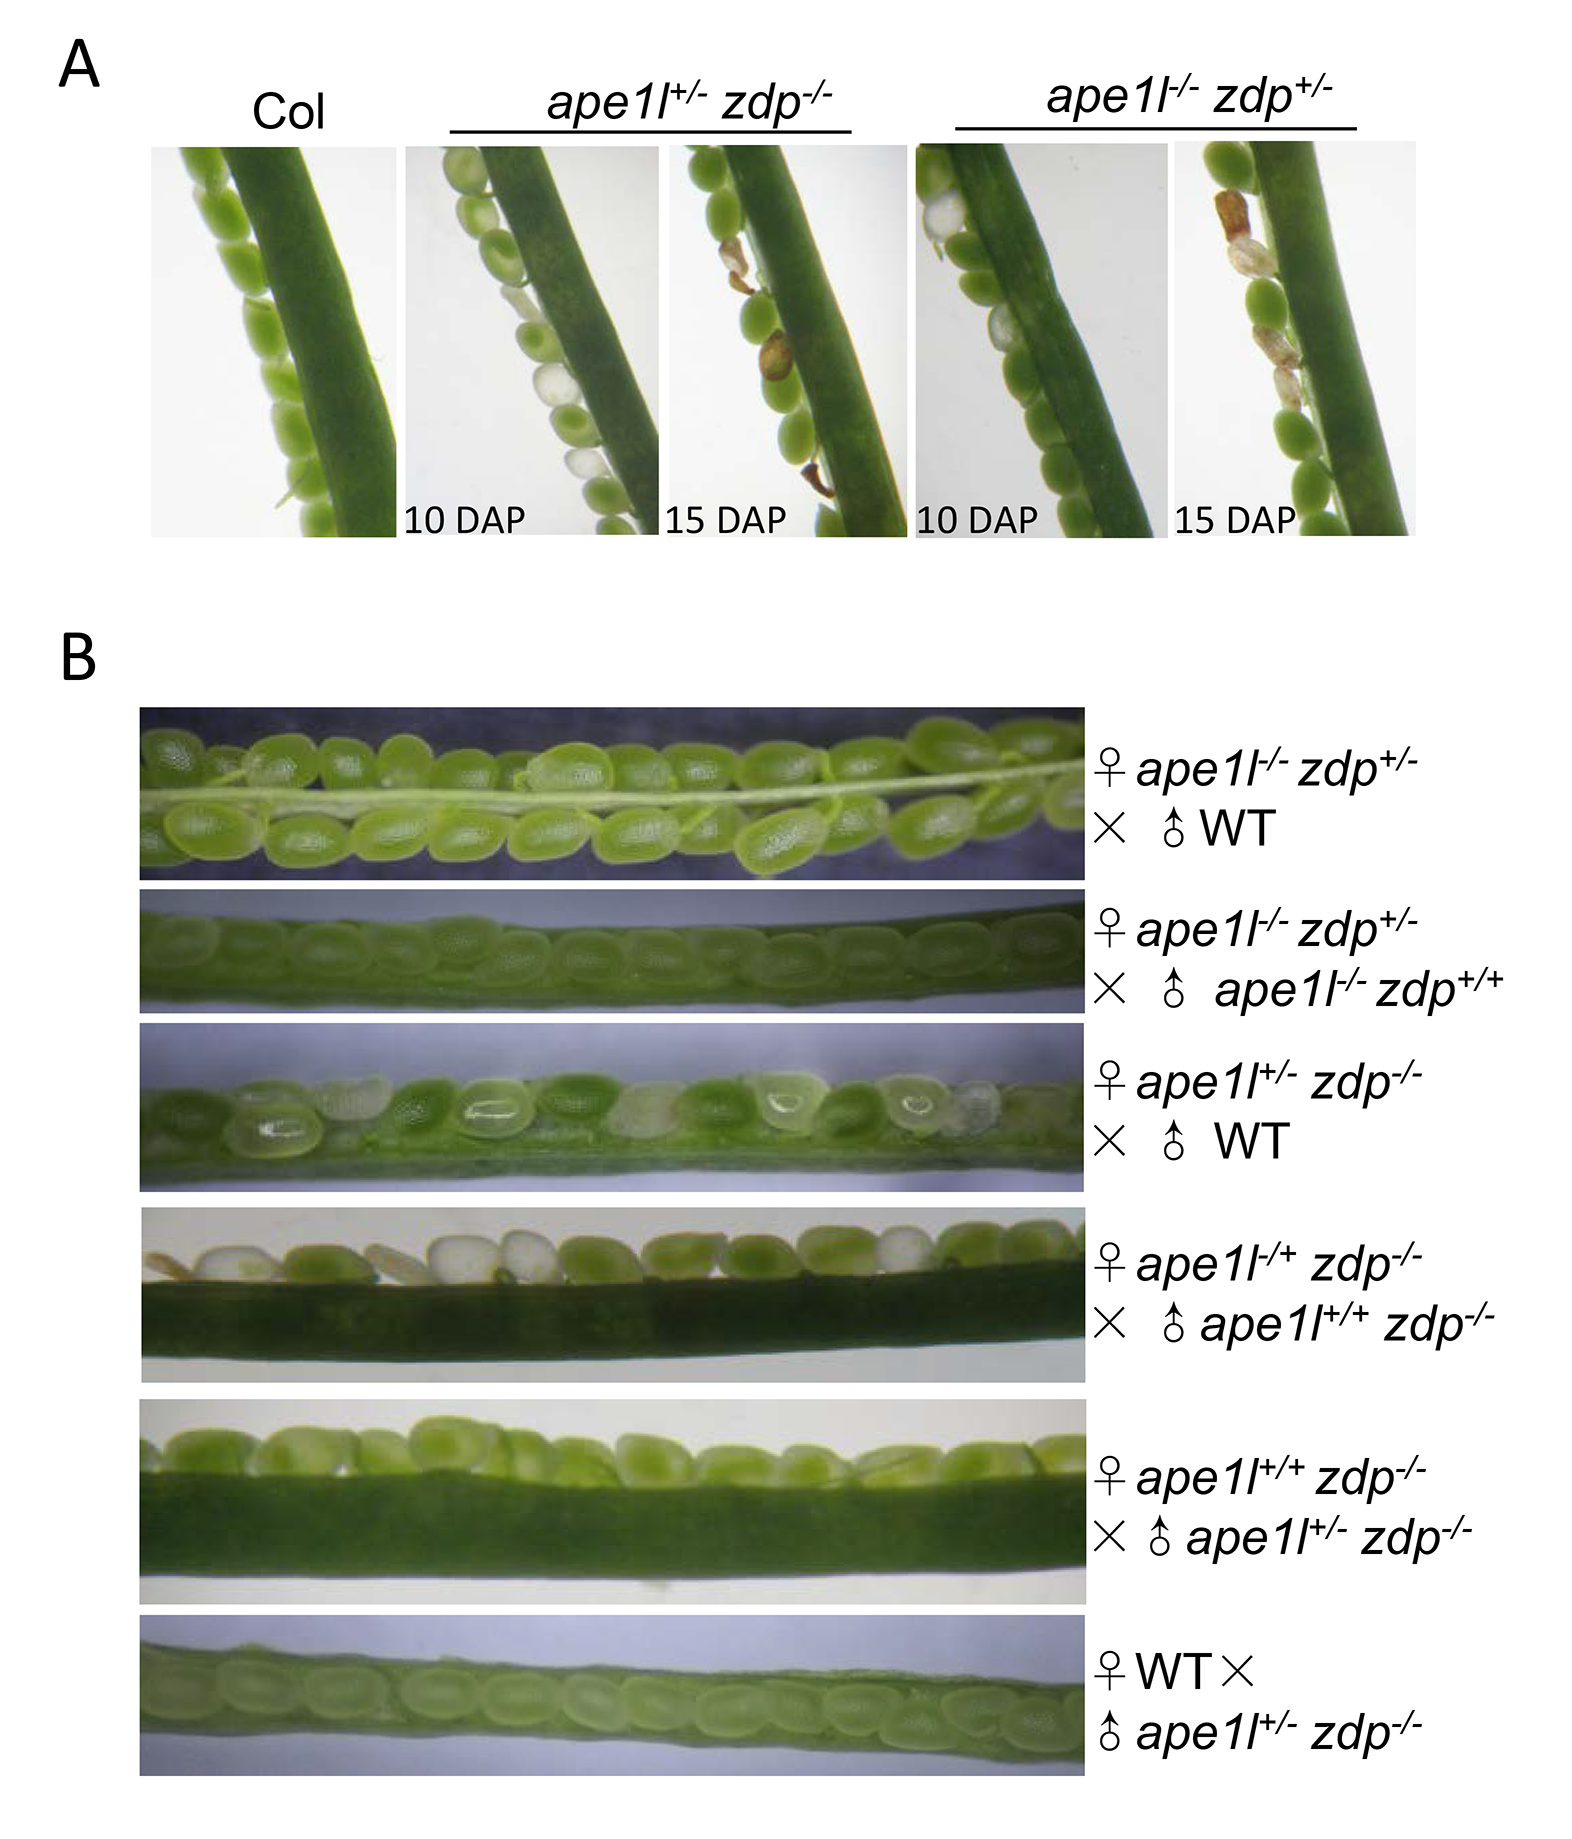 Effects of <i>ape1l</i> and <i>zdp</i> double mutations on seed development.